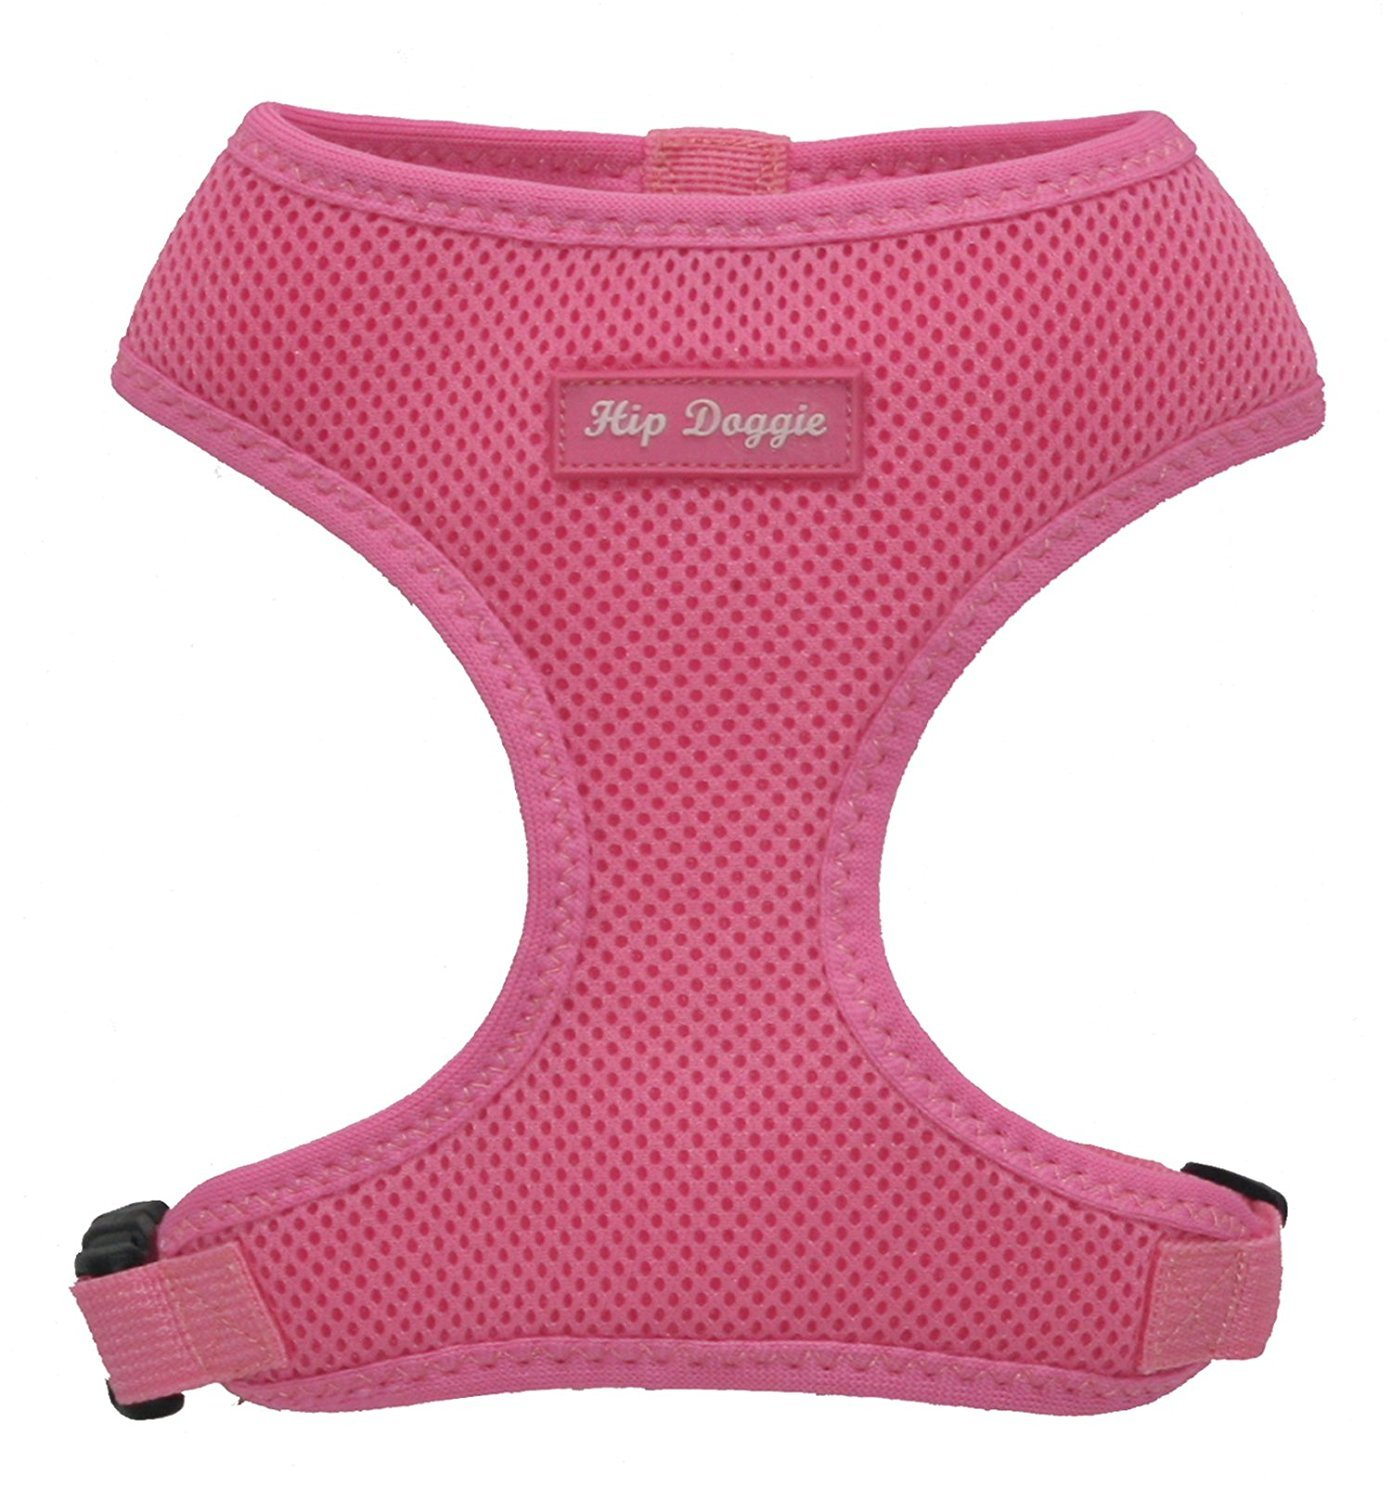 Hip Doggie Award Winning, Ultra Comfort Pink Mesh Harness Vest XS